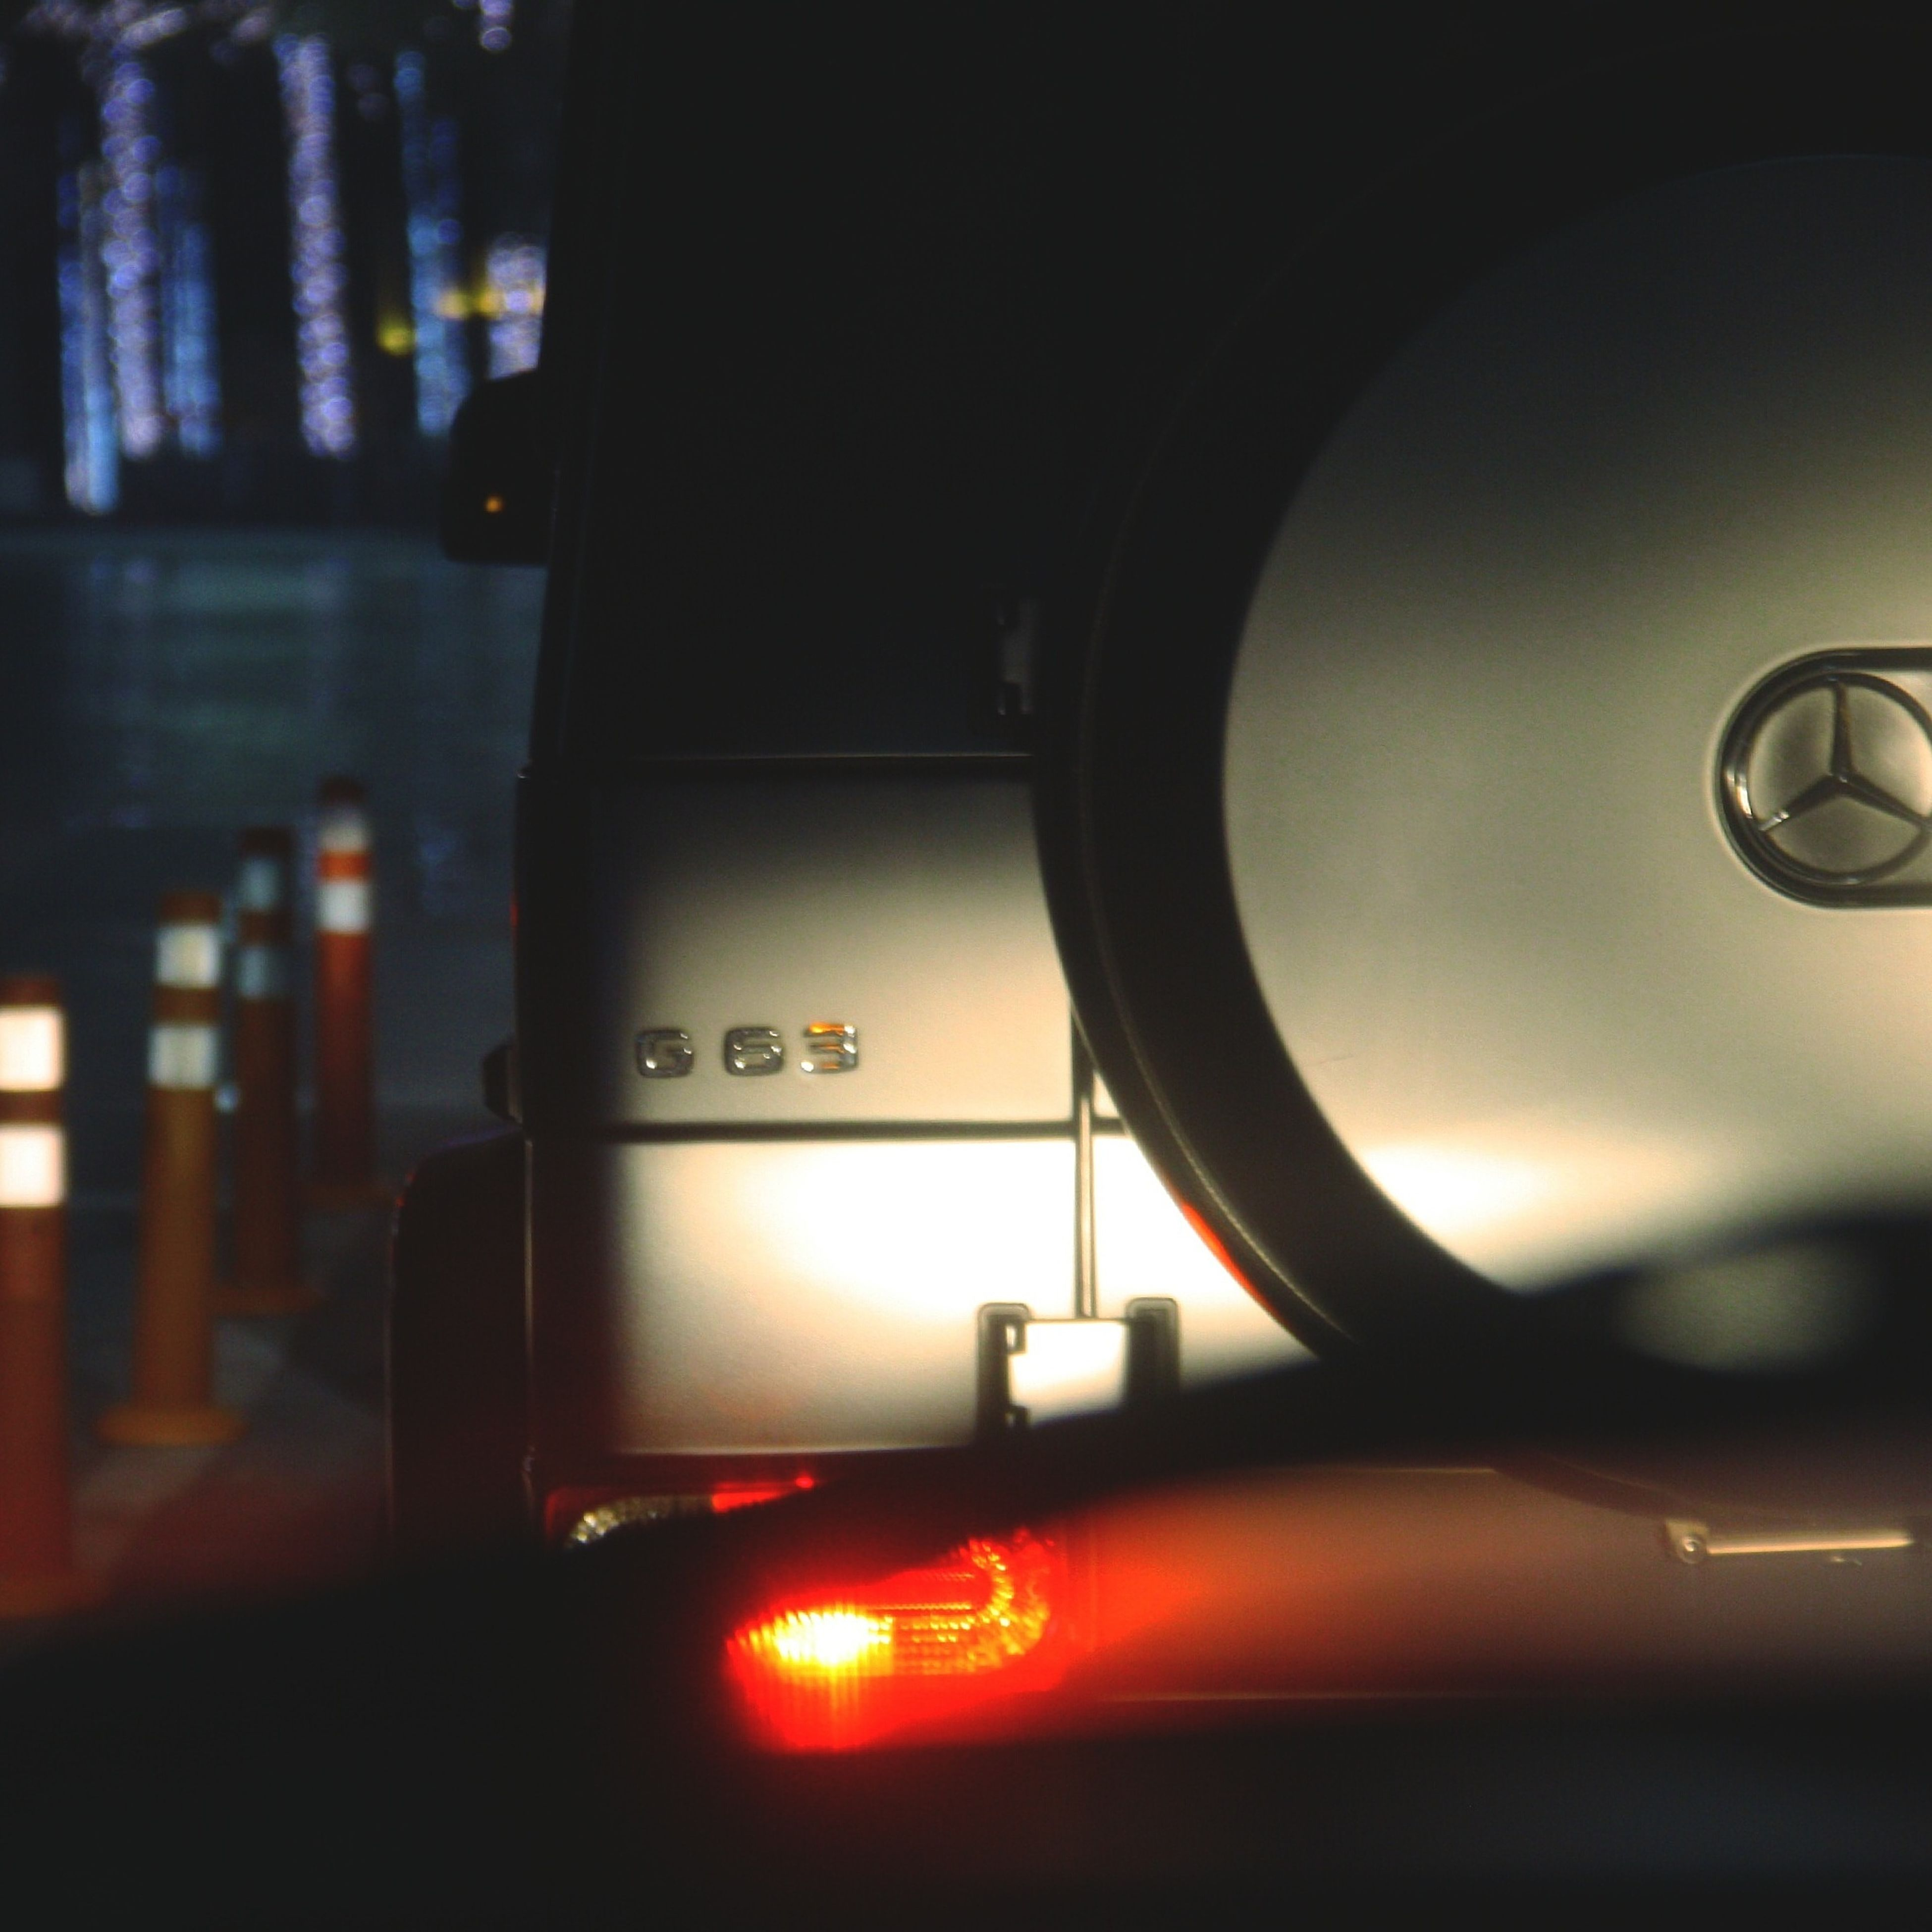 illuminated, transportation, indoors, communication, lighting equipment, mode of transport, technology, close-up, car, focus on foreground, night, text, no people, land vehicle, silhouette, number, guidance, travel, connection, sunset